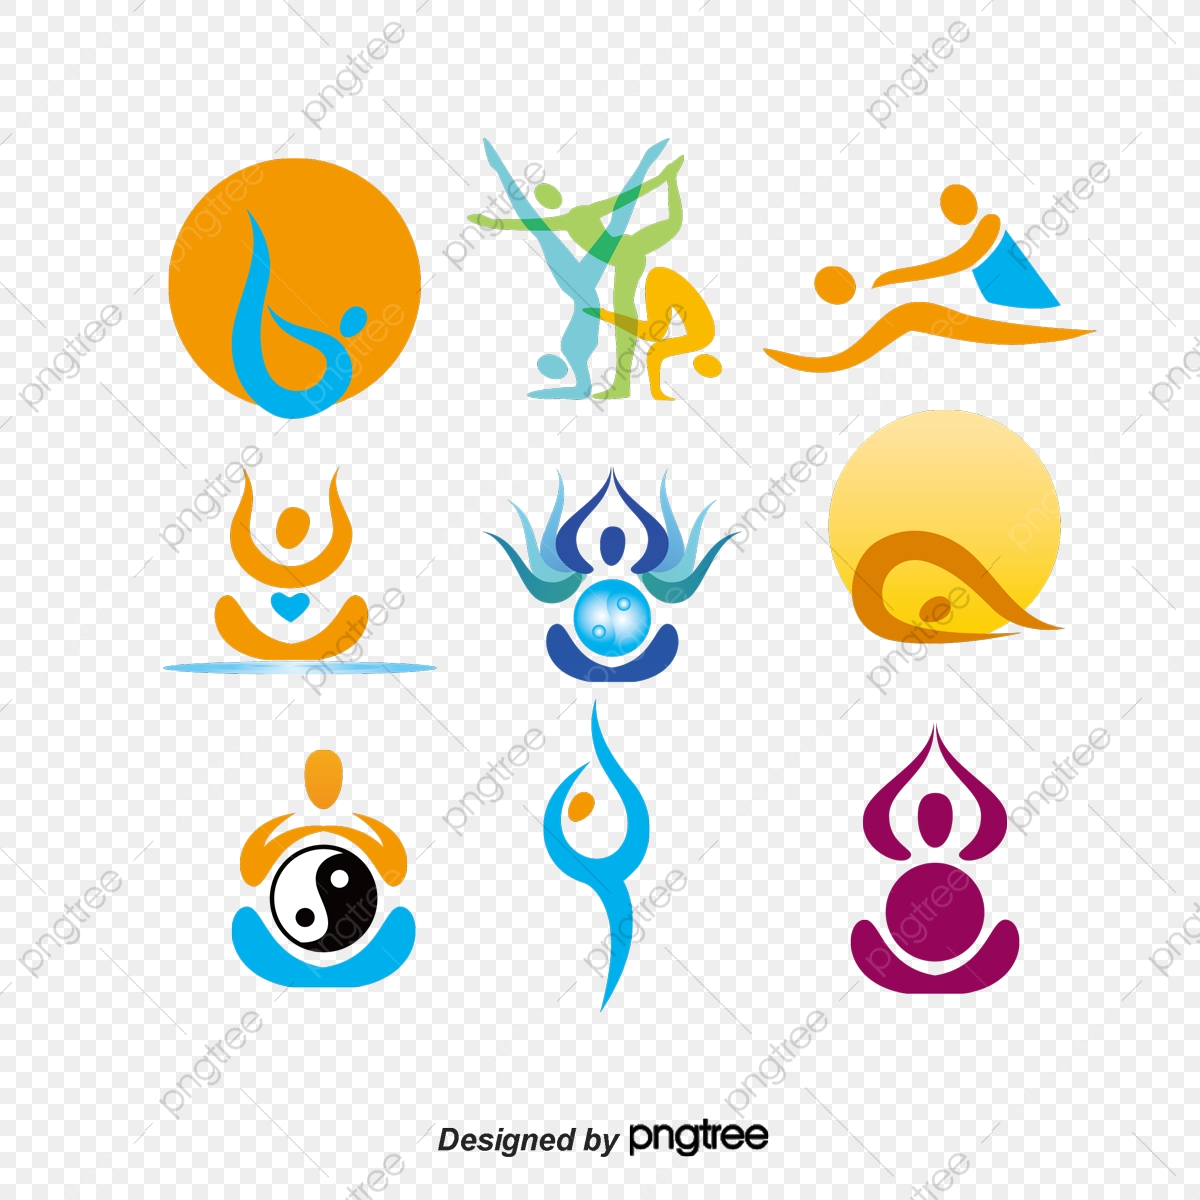 Yoga Logo Vector Material Vector Material Yoga Vector Logo Vector Logo Mark Icon Png Transparent Clipart Image And Psd File For Free Download